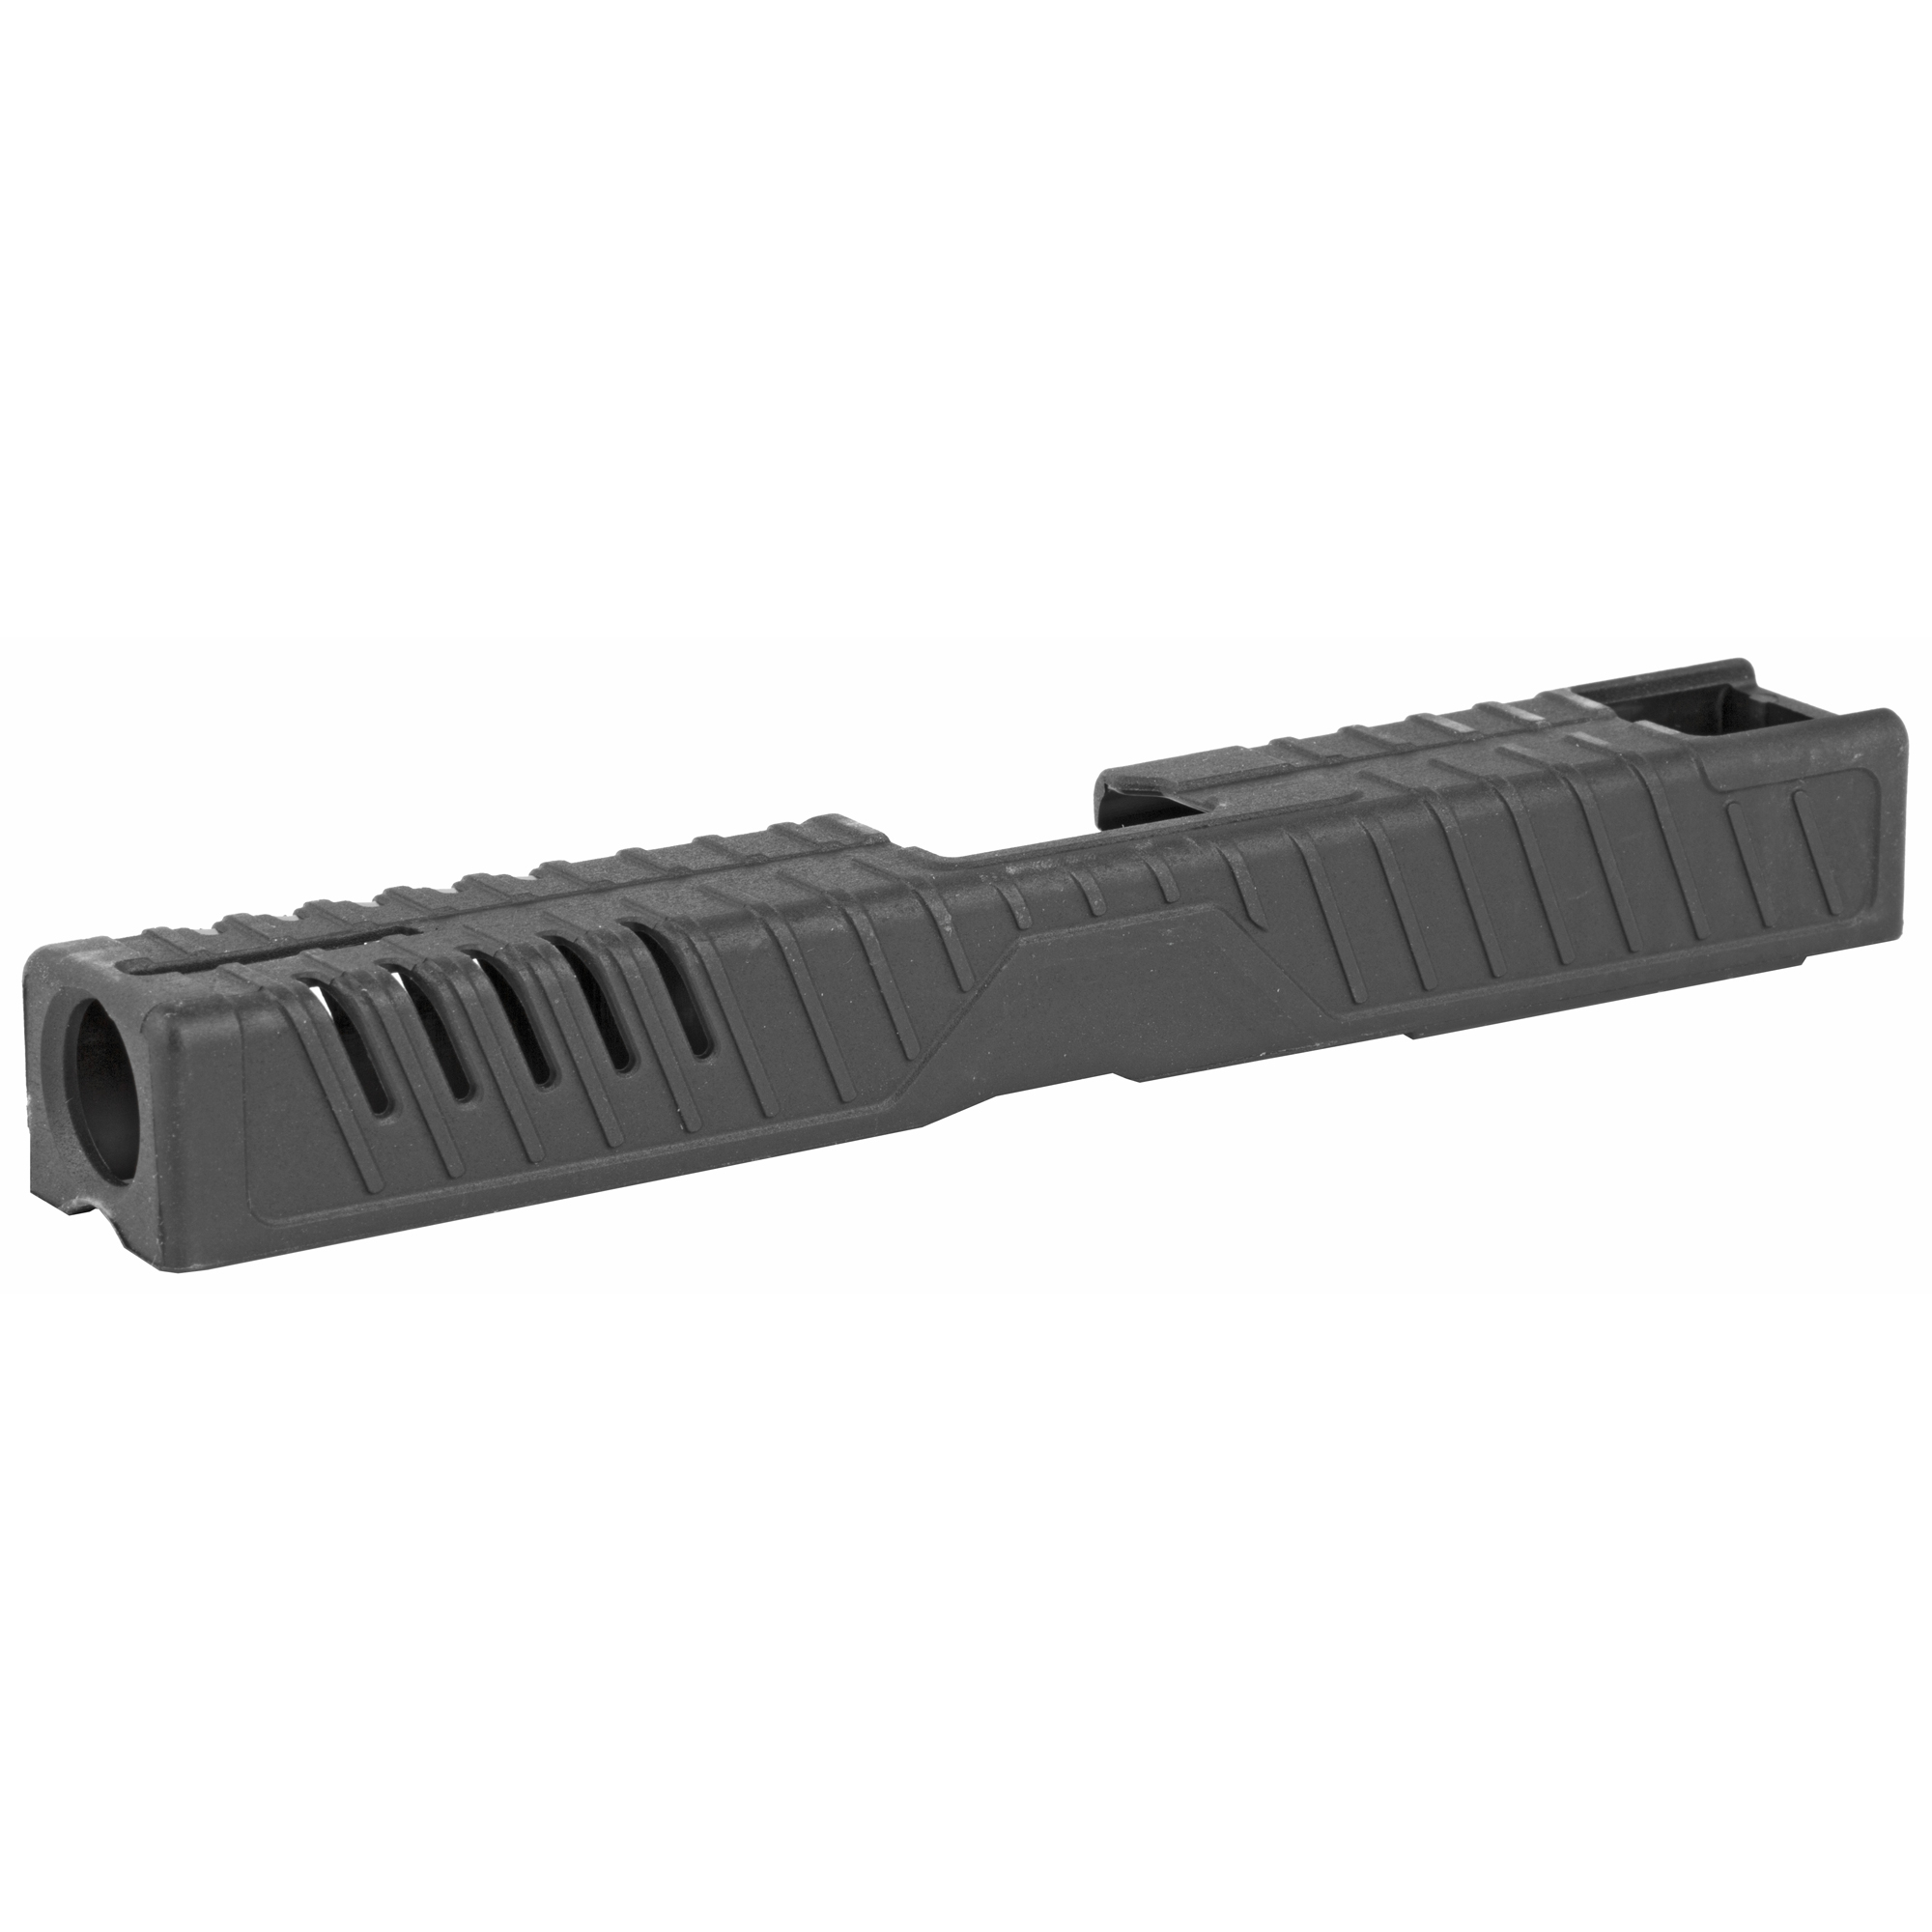 "TacticSkin are highly-practical slide covers for GLOCK Handguns"" made to enhance visibility and style"" while improving performance and versatility."